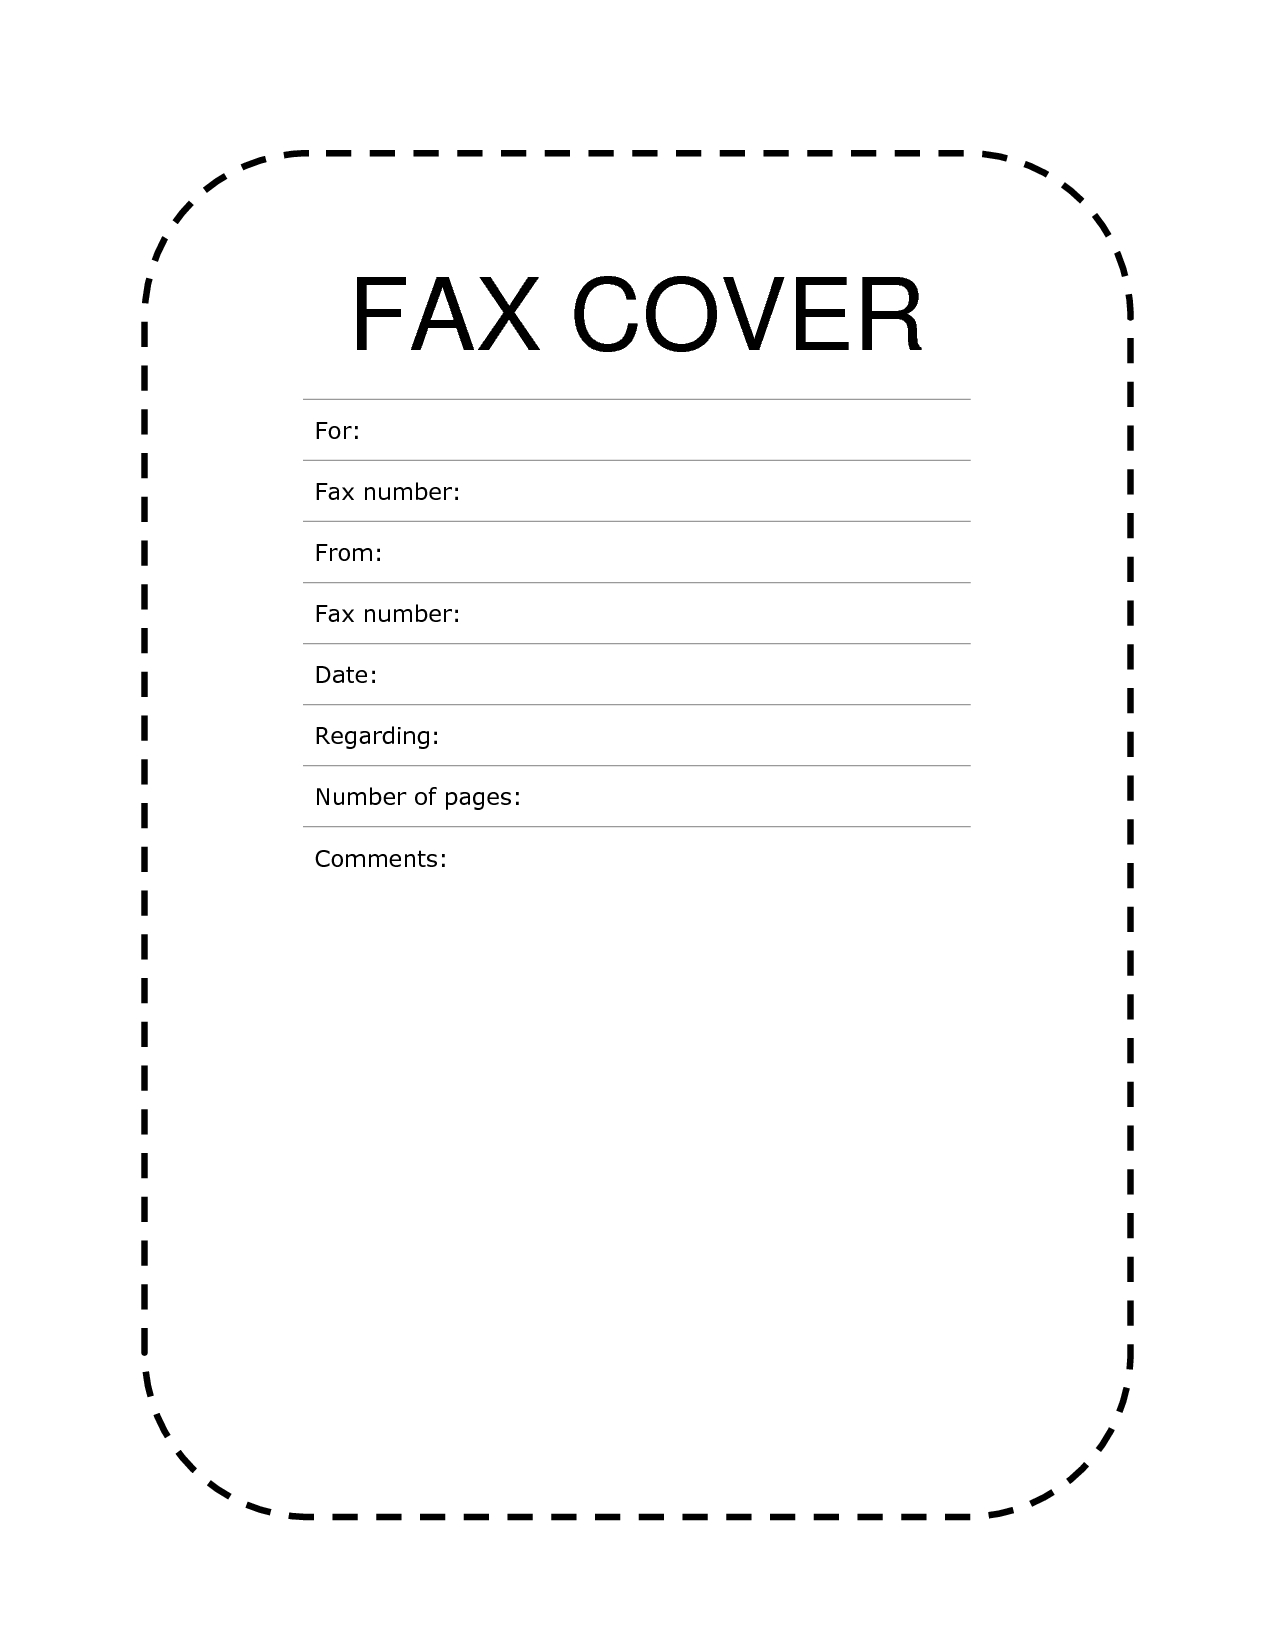 Free Fax Cover Sheet Template Format Example Pdf Printable | Fax - Free Printable Fax Cover Sheet Pdf